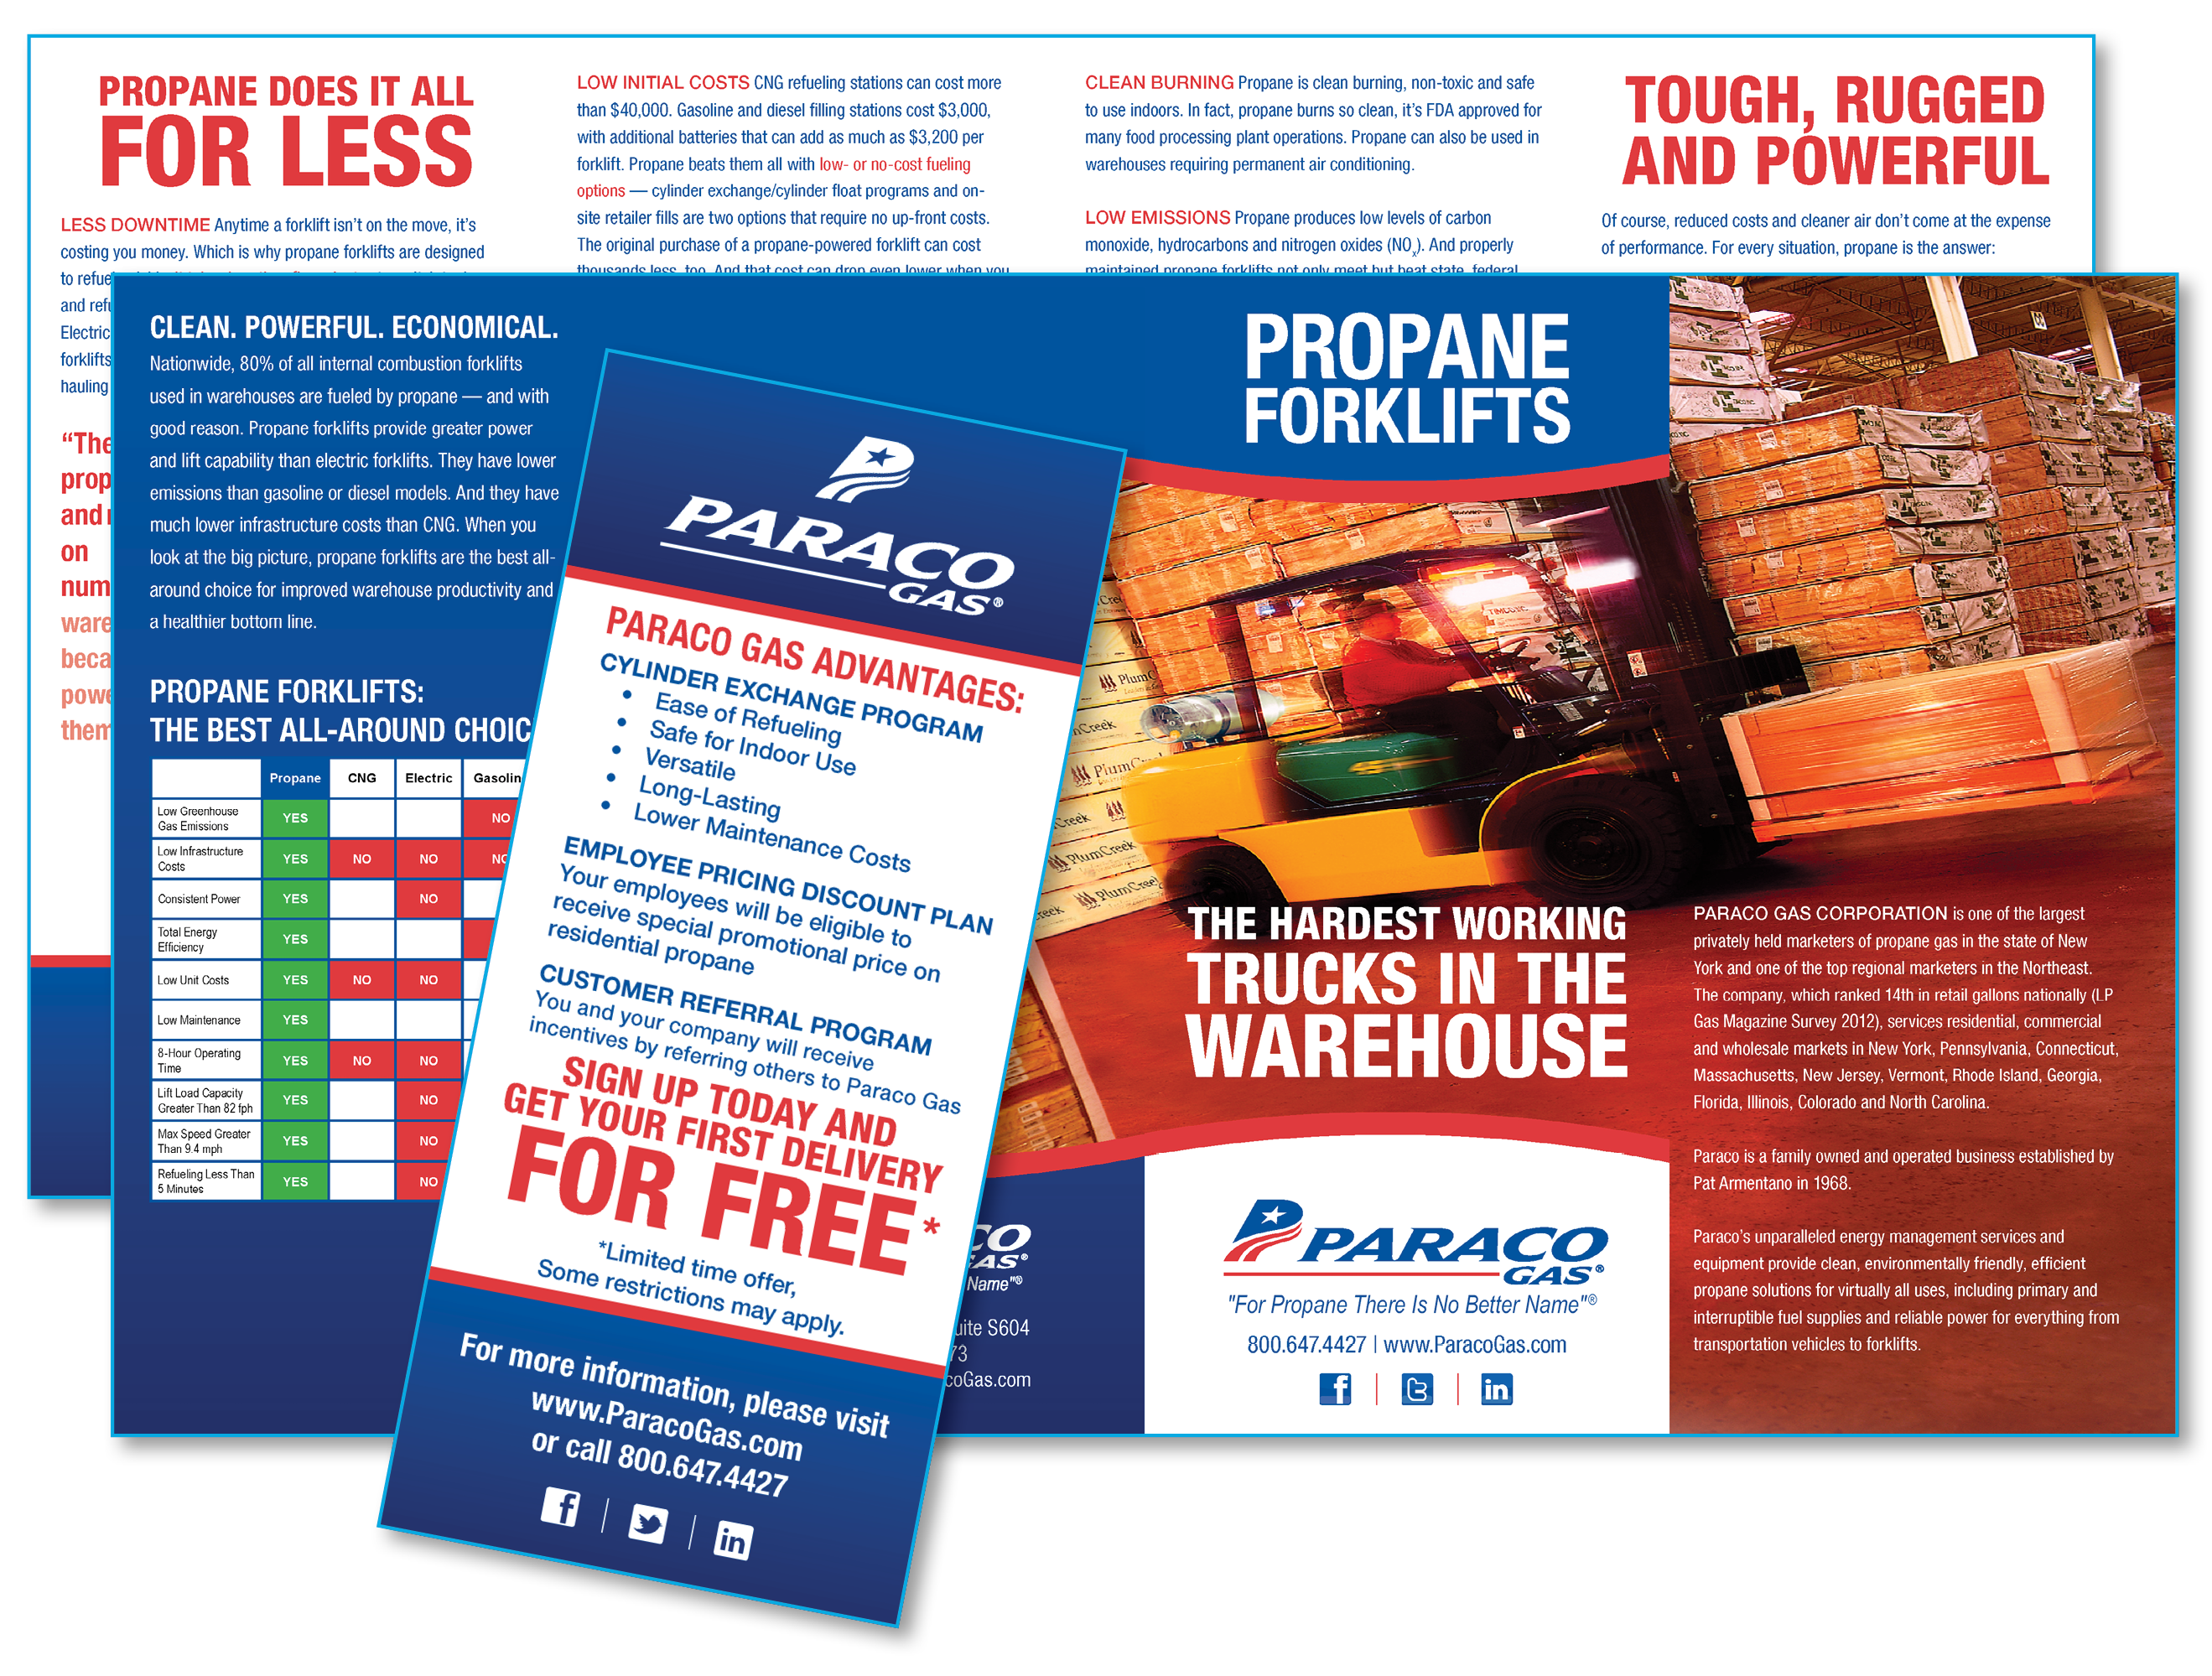 Paraco Gas Propane Forklifts Brochure and Special Offer